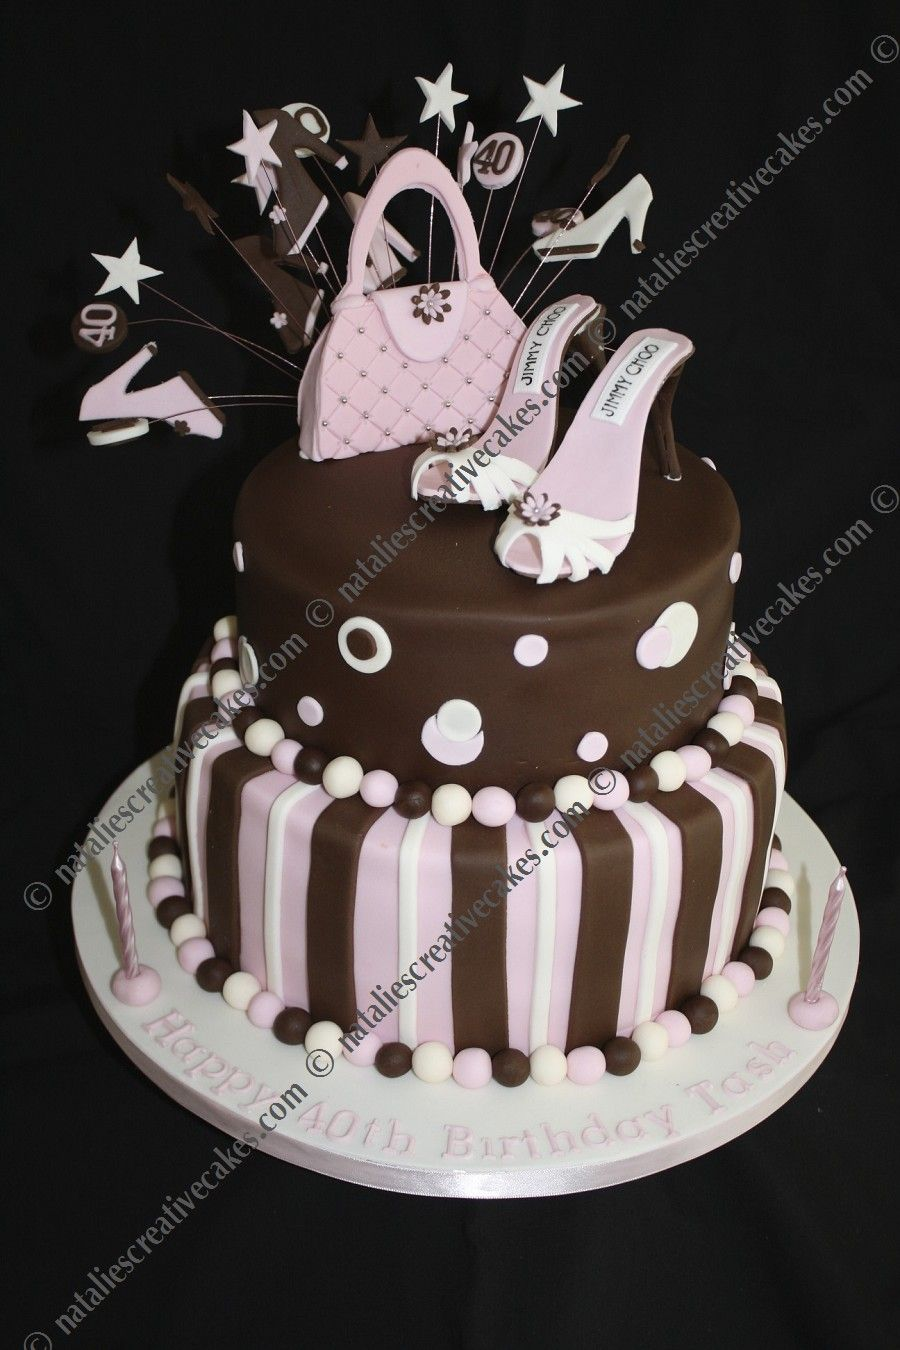 Natalies Creative Cakes Glamorous Girls Ladies Cakes Caution